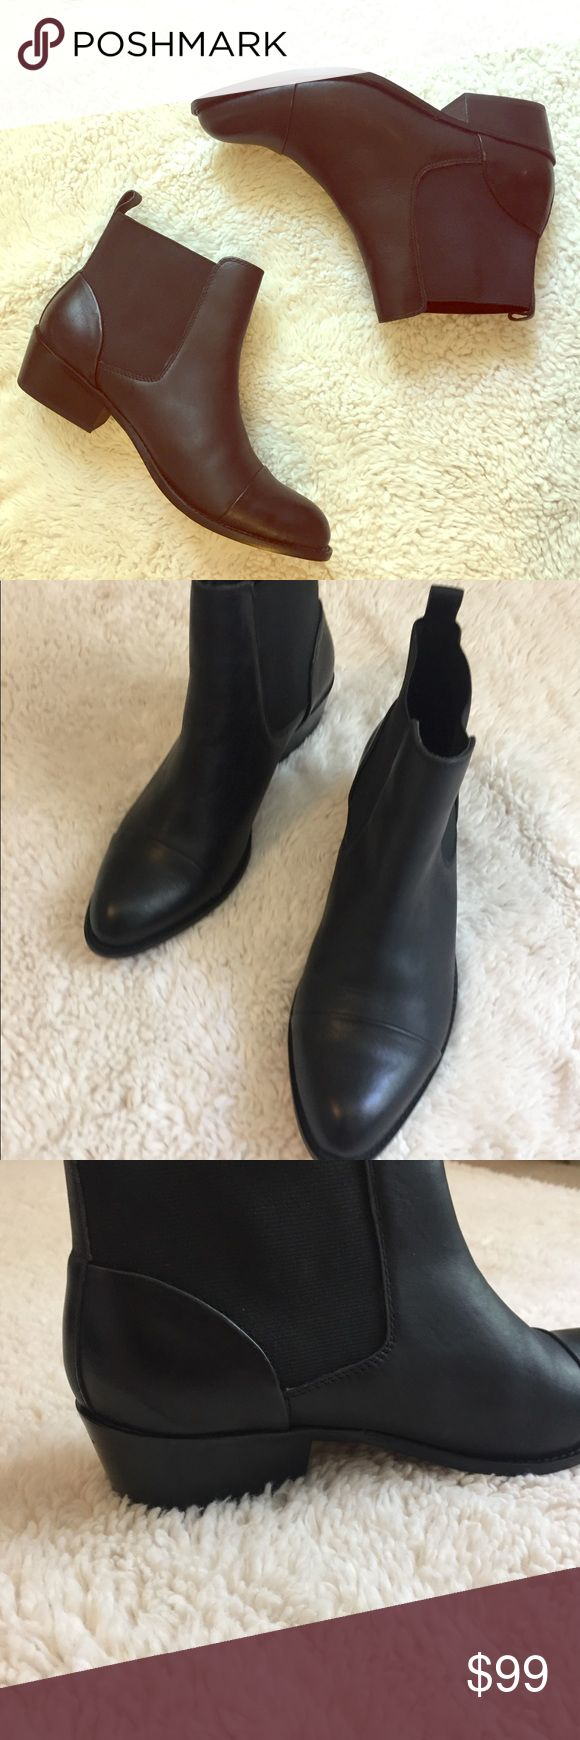 Brand new dolce vita black chelsea boots New black chelsea boots from dolce vita. Real leather, small heel and almond toe. Very sleek silhouette, not clunky at all and even does well in rain. I have never worn these & there is no creasing/sign of wear :) Dolce Vita Shoes Ankle Boots & Booties